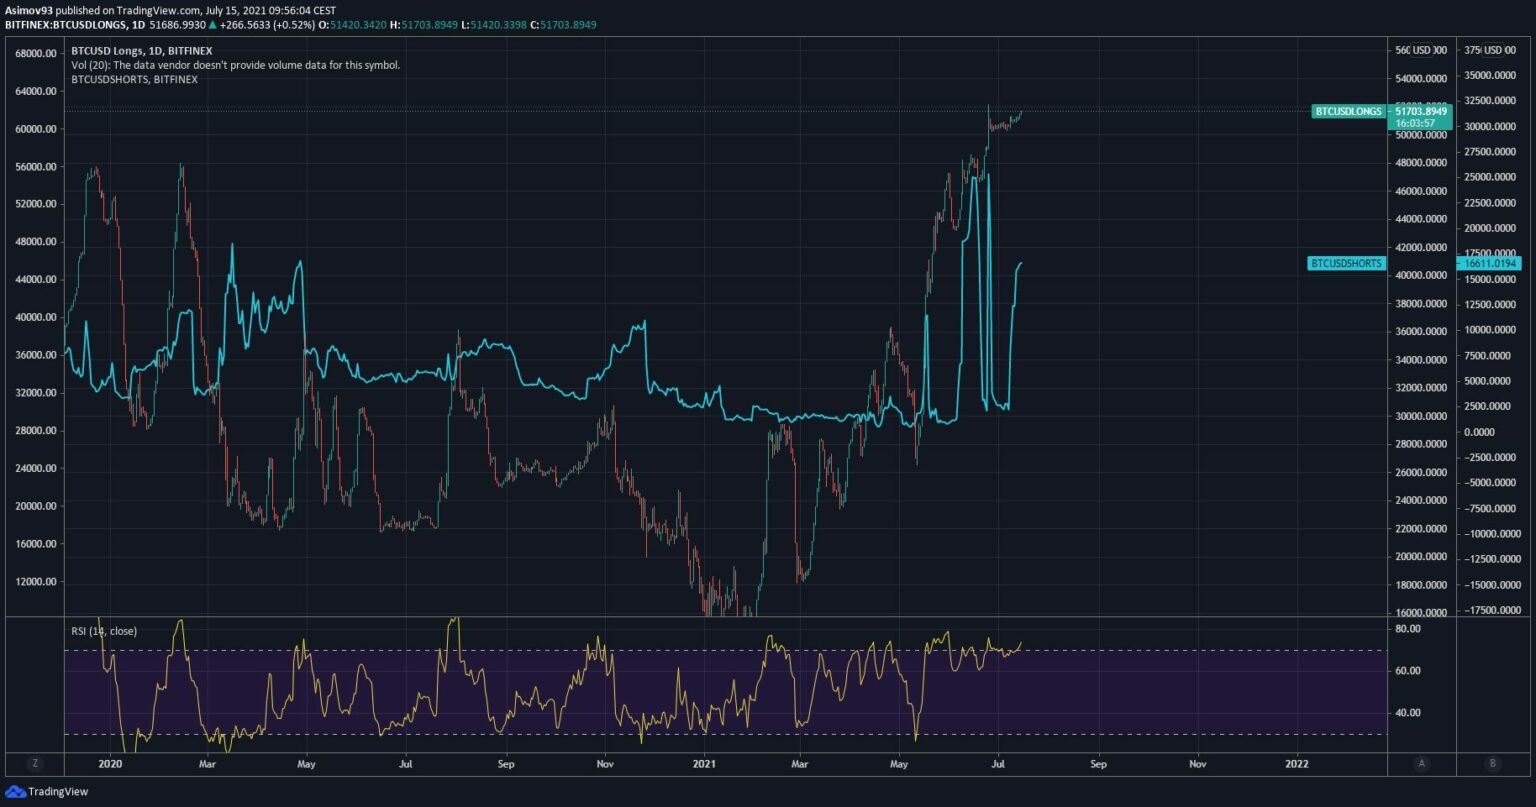 15.07.21 BTC / USD - Long and short positions